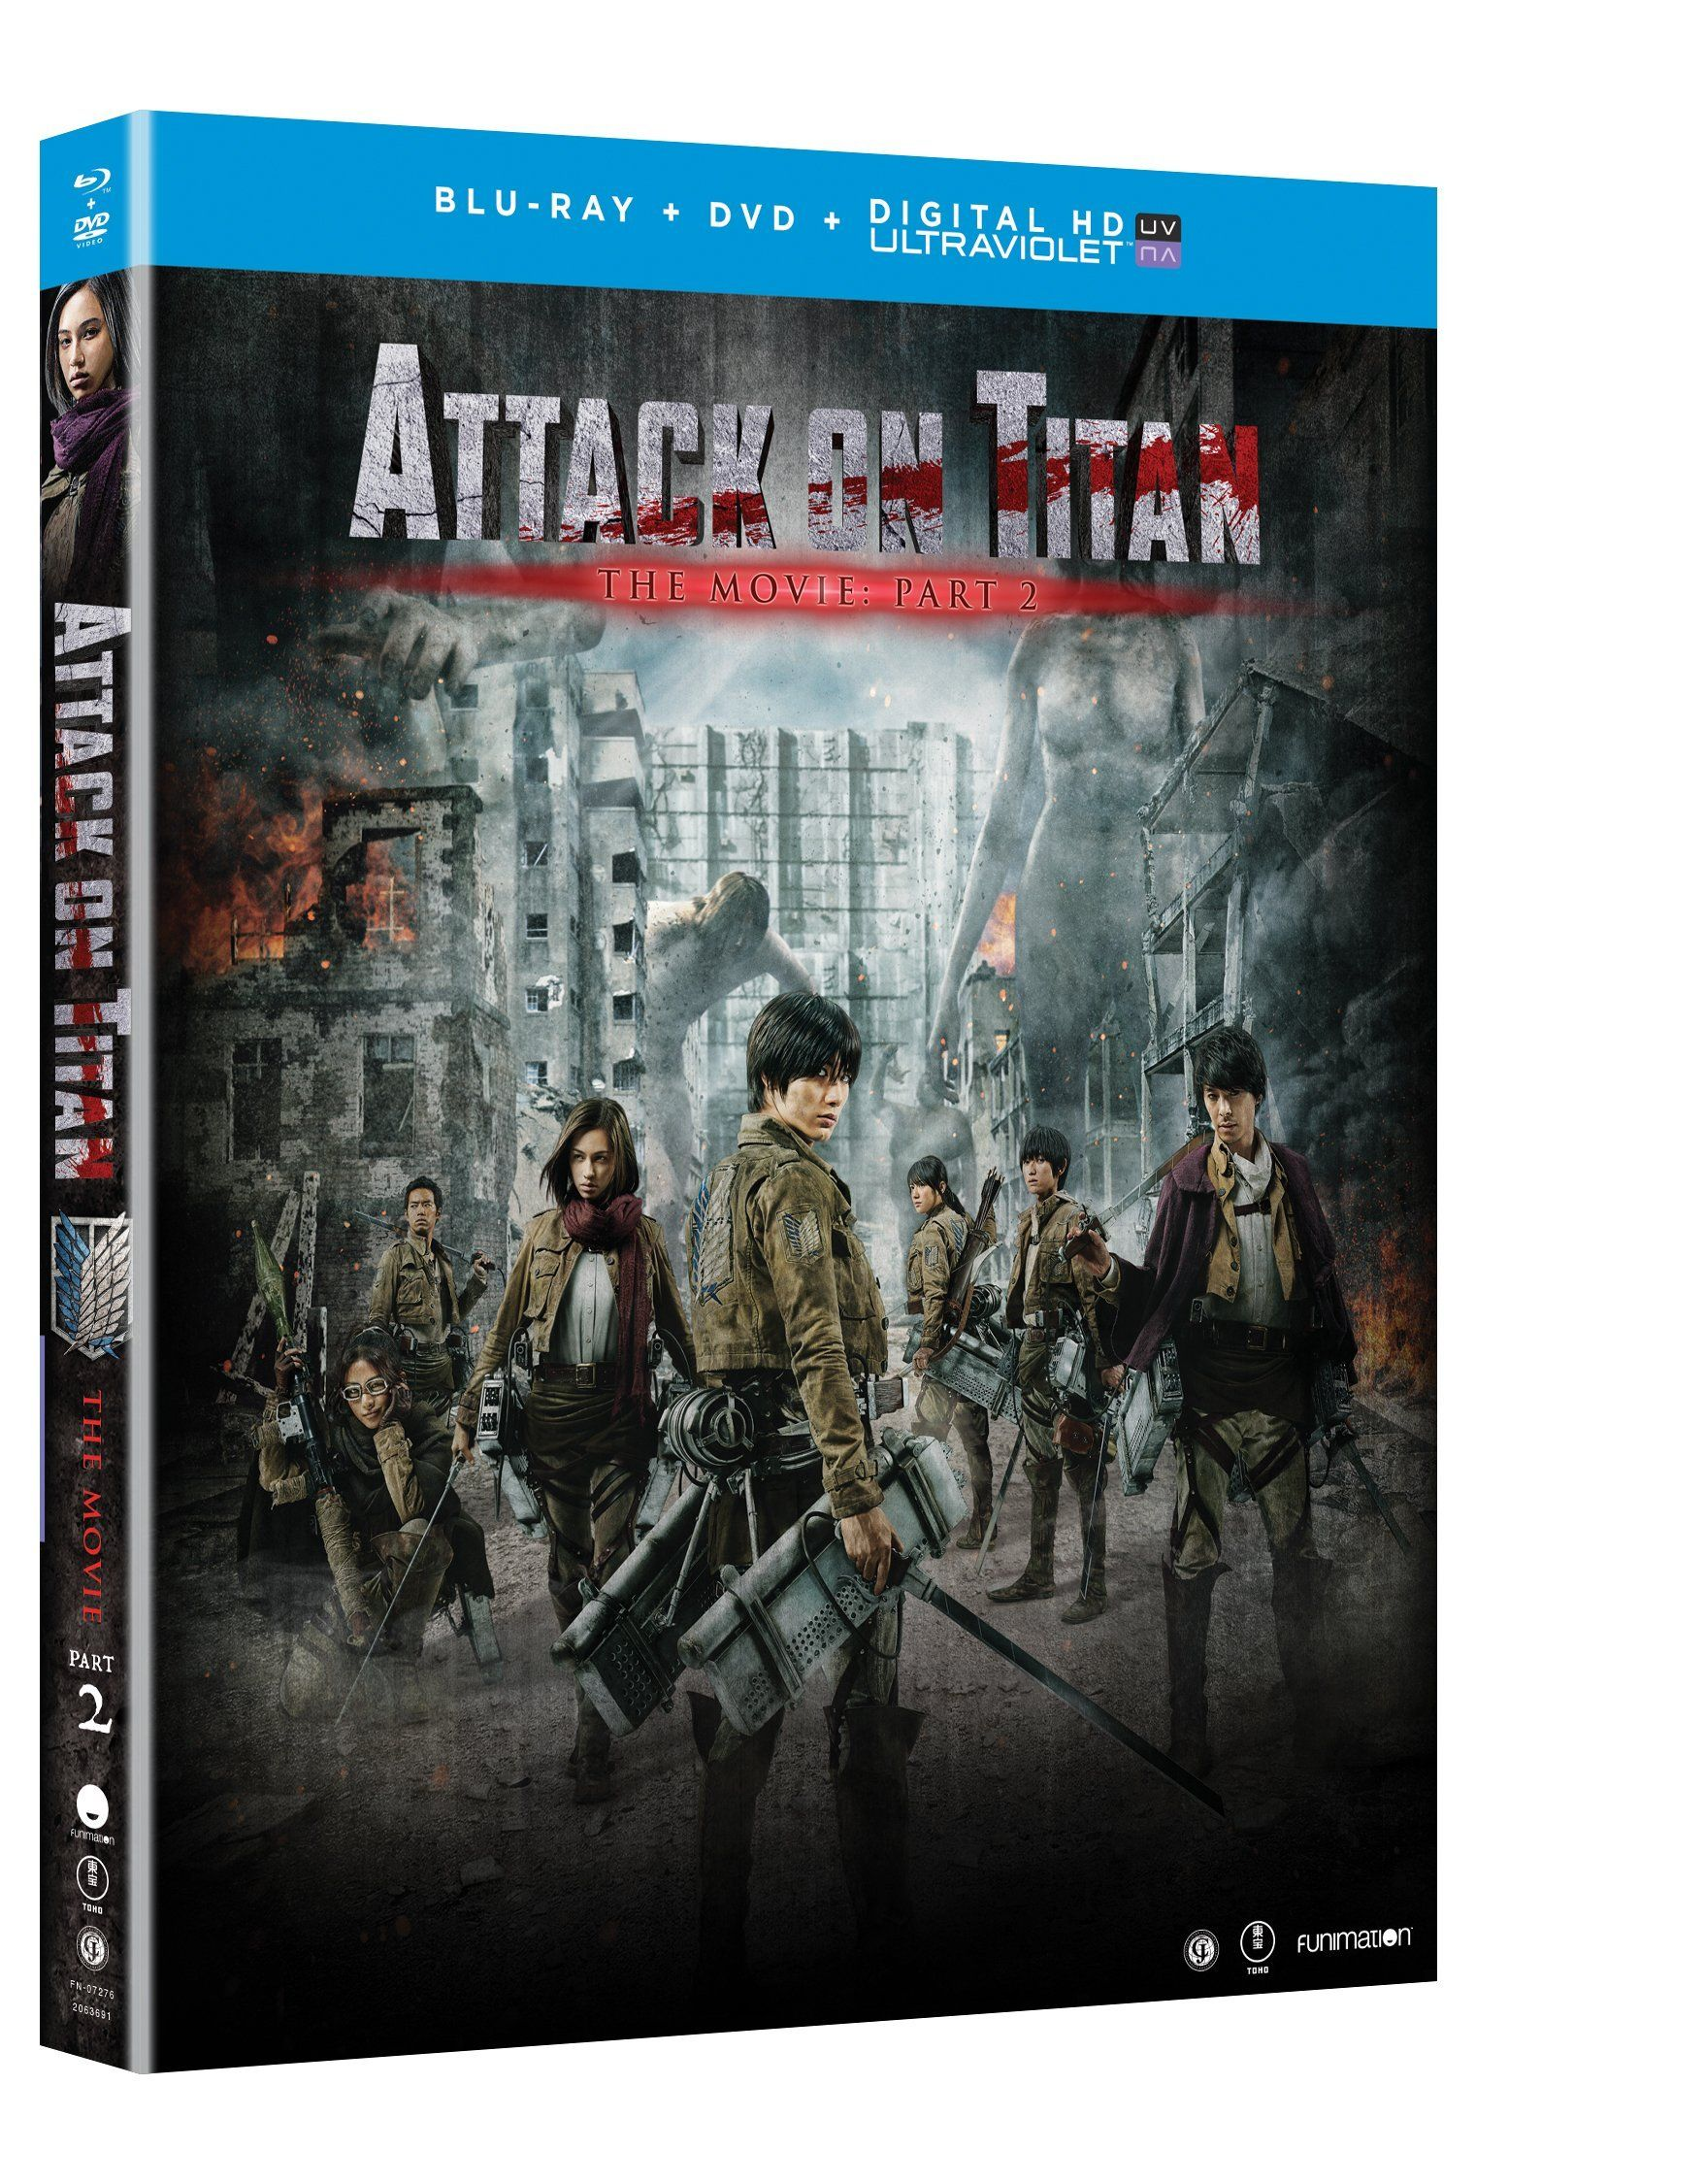 Introducing, Attack on Titan: ... http://www.zxeus.com ...